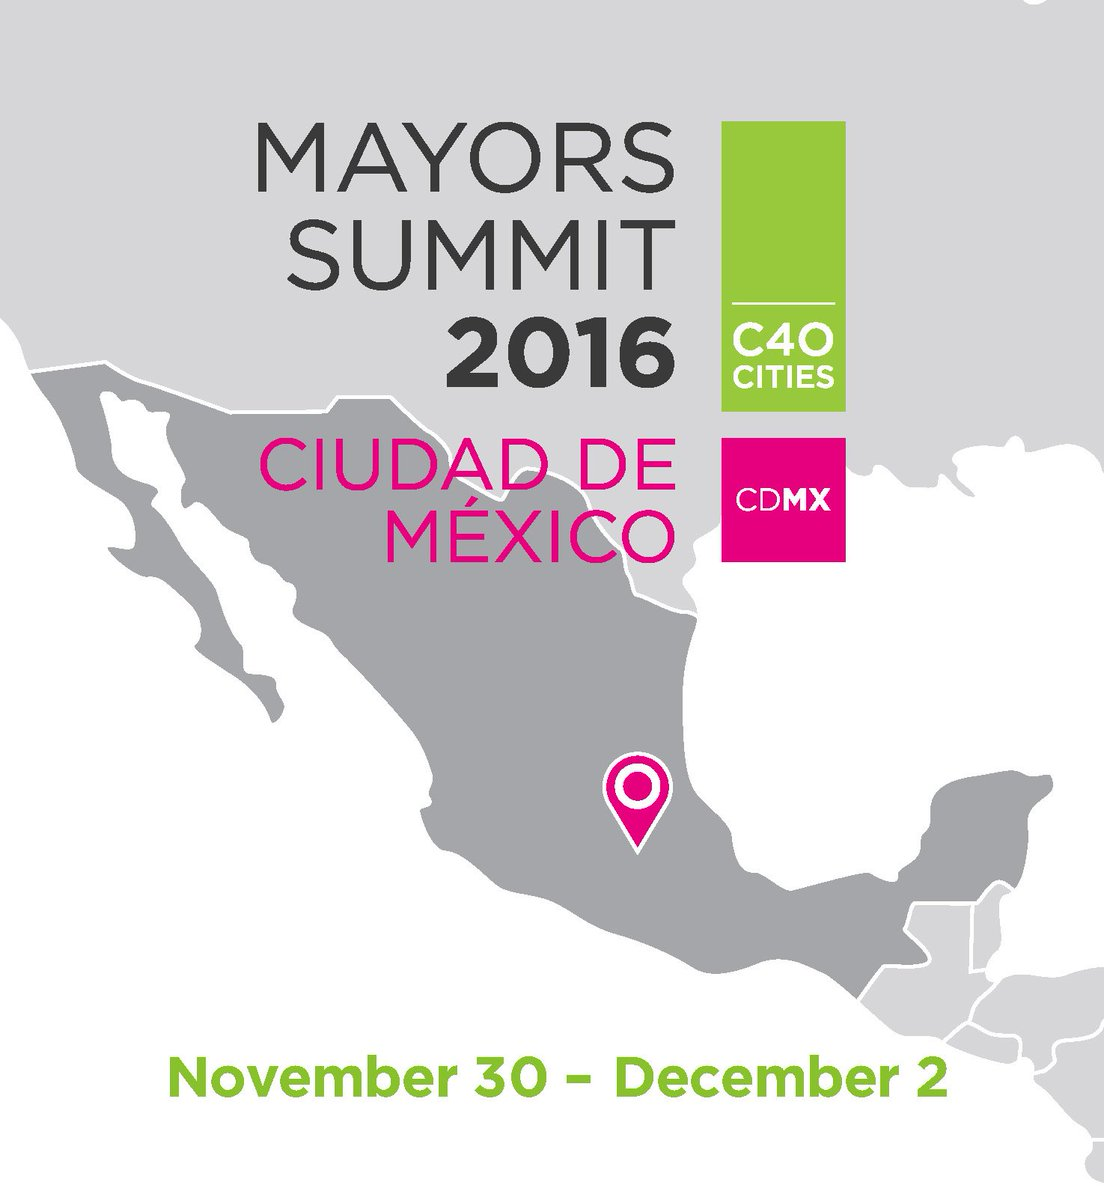 C40Summit & #C40Awards will bring together global mayors to highlight best ways to tackle #ClimateChange in #cities https://t.co/aeQC4Xfhug